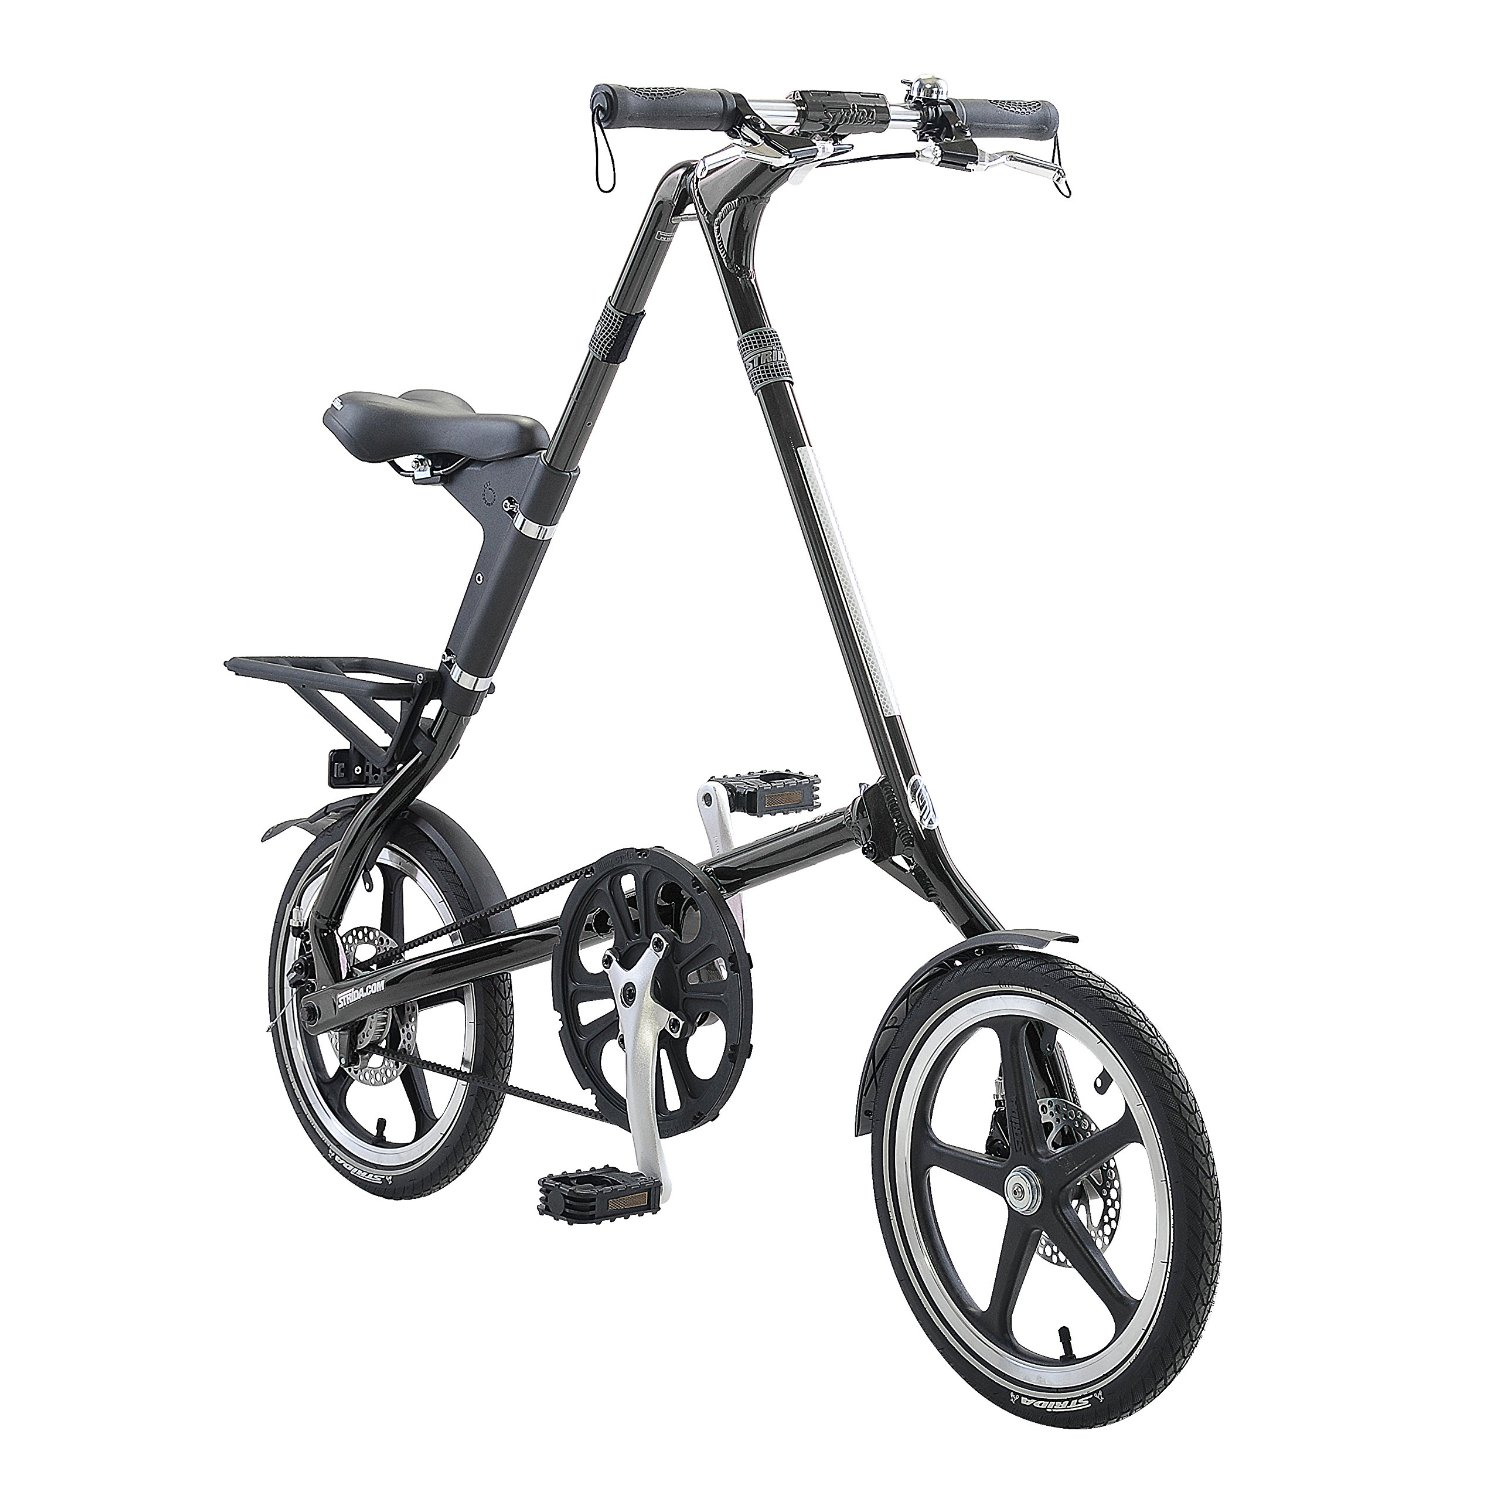 Strida folding bike: overview, features and reviews 33